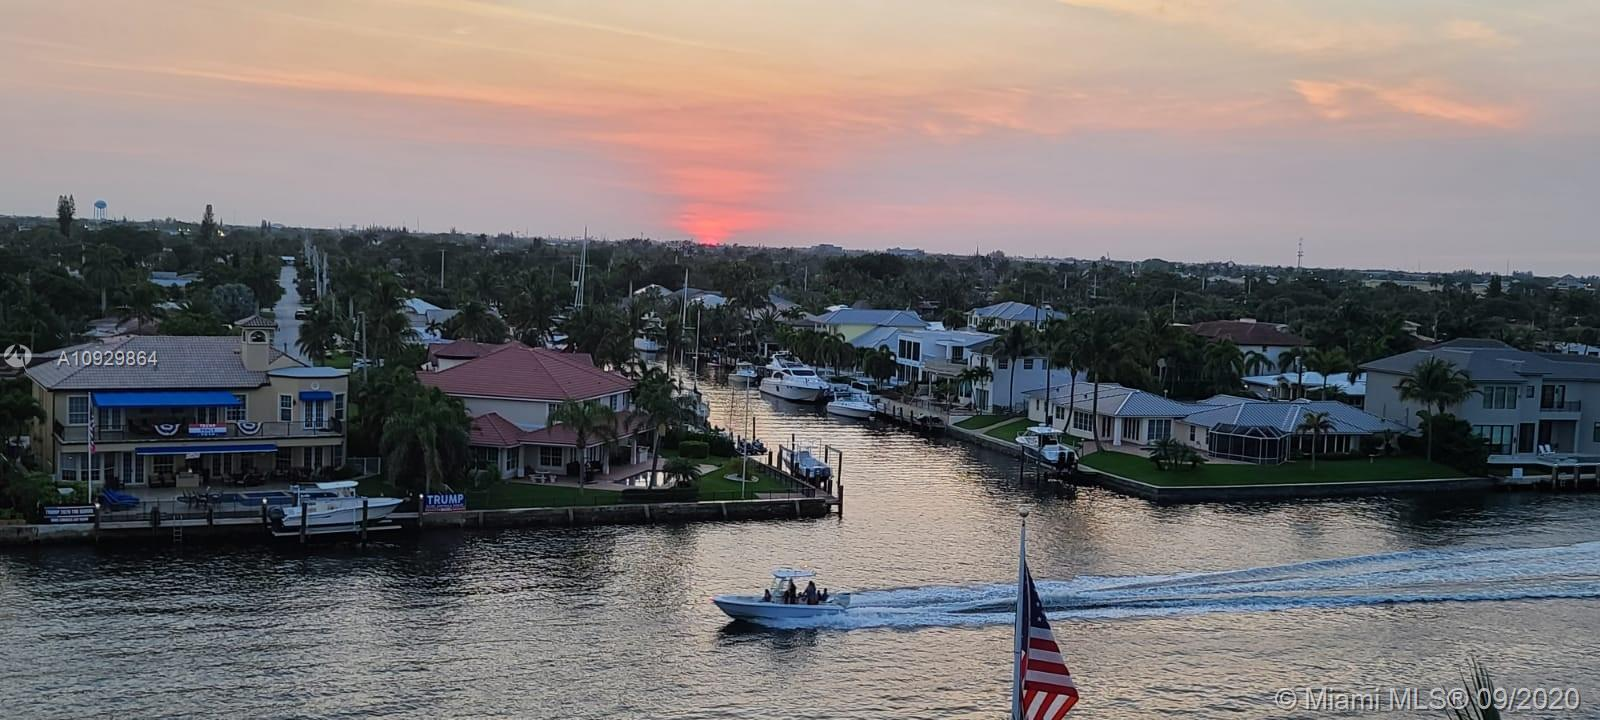 Completely renovated boutique style condo, covered parking, low HOA. Located on the Intercoastal, st